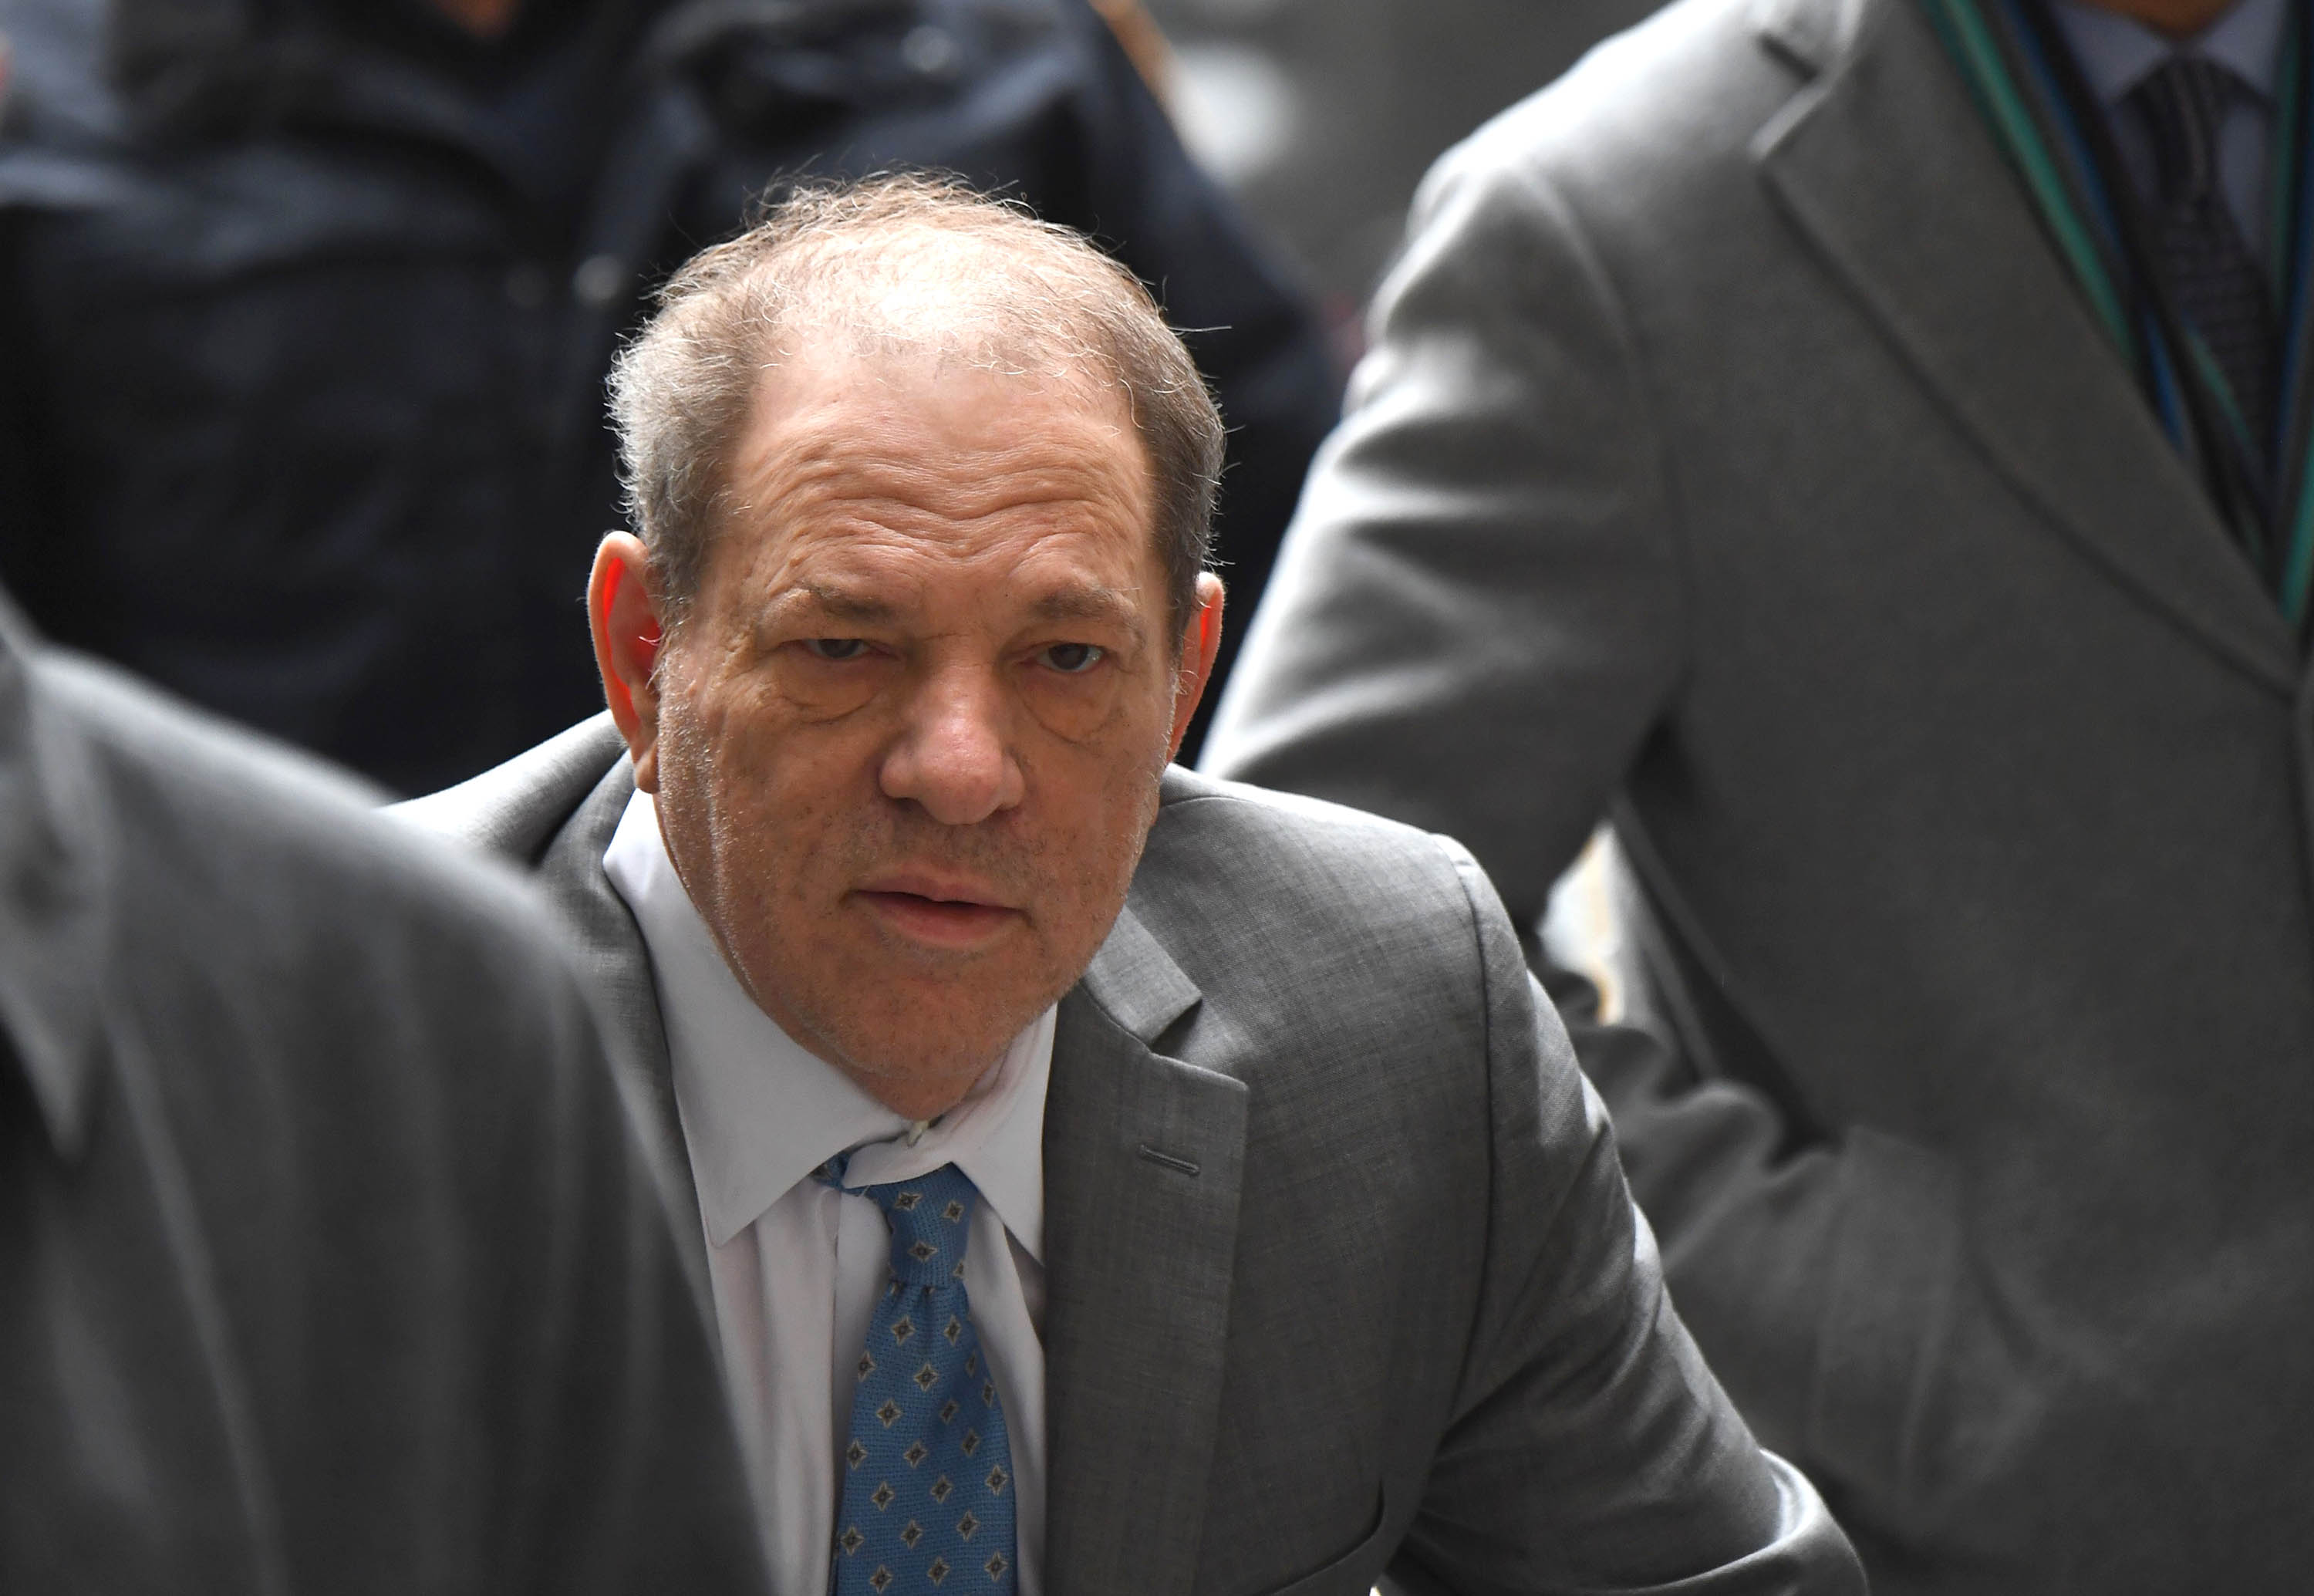 Jurors' note in Harvey Weinstein trial suggests they may be deadlocked on most serious charges